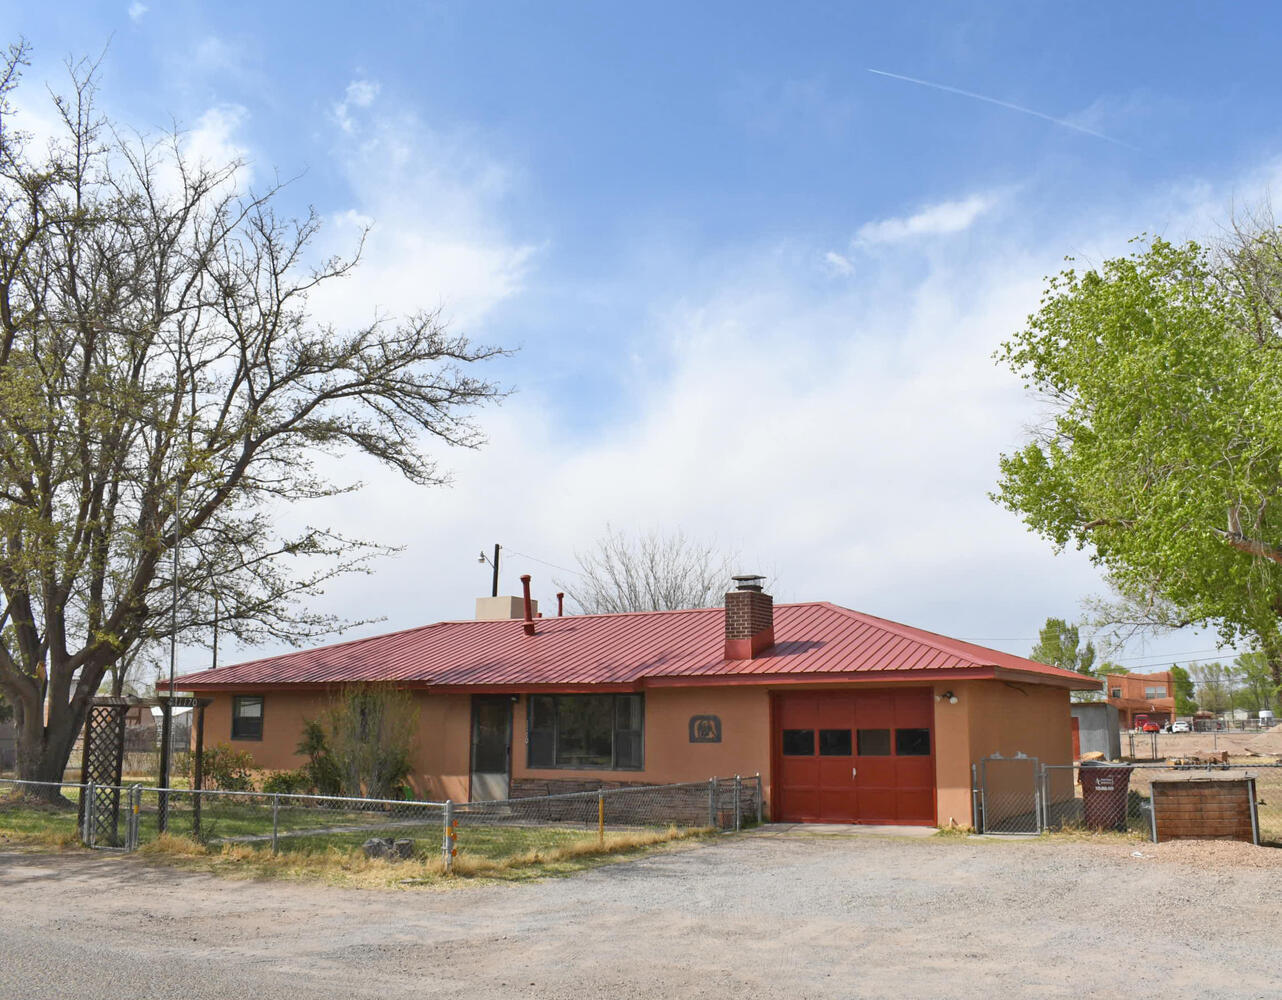 Opportunity for a great family home with half an acre in Bosque Farms. This home has 3 beds, 1 bath, 1 car garage. It's on city water but has a well for landscaping. Lots of room for the garden. A nice, quiet neighborhood for the family. Use showtime to schedule. Professional measurement to be done on 5/13.